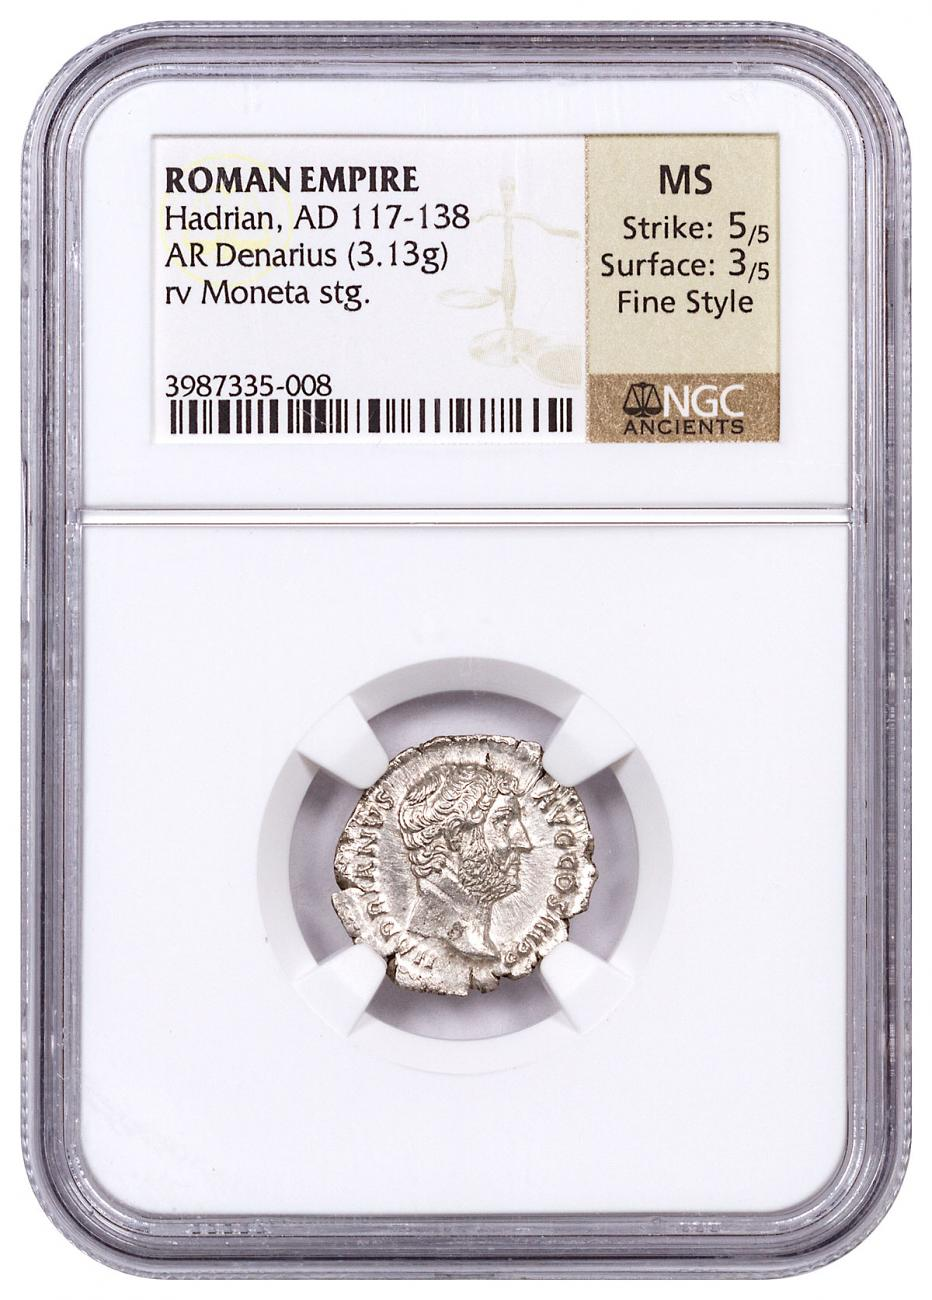 Roman Empire, Silver Denarius of Hadrian (AD 117-138) - obv. Bust/rv. Moneta NGC MS (Strike: 5/5, Surface: 3/5 - Fine Style)